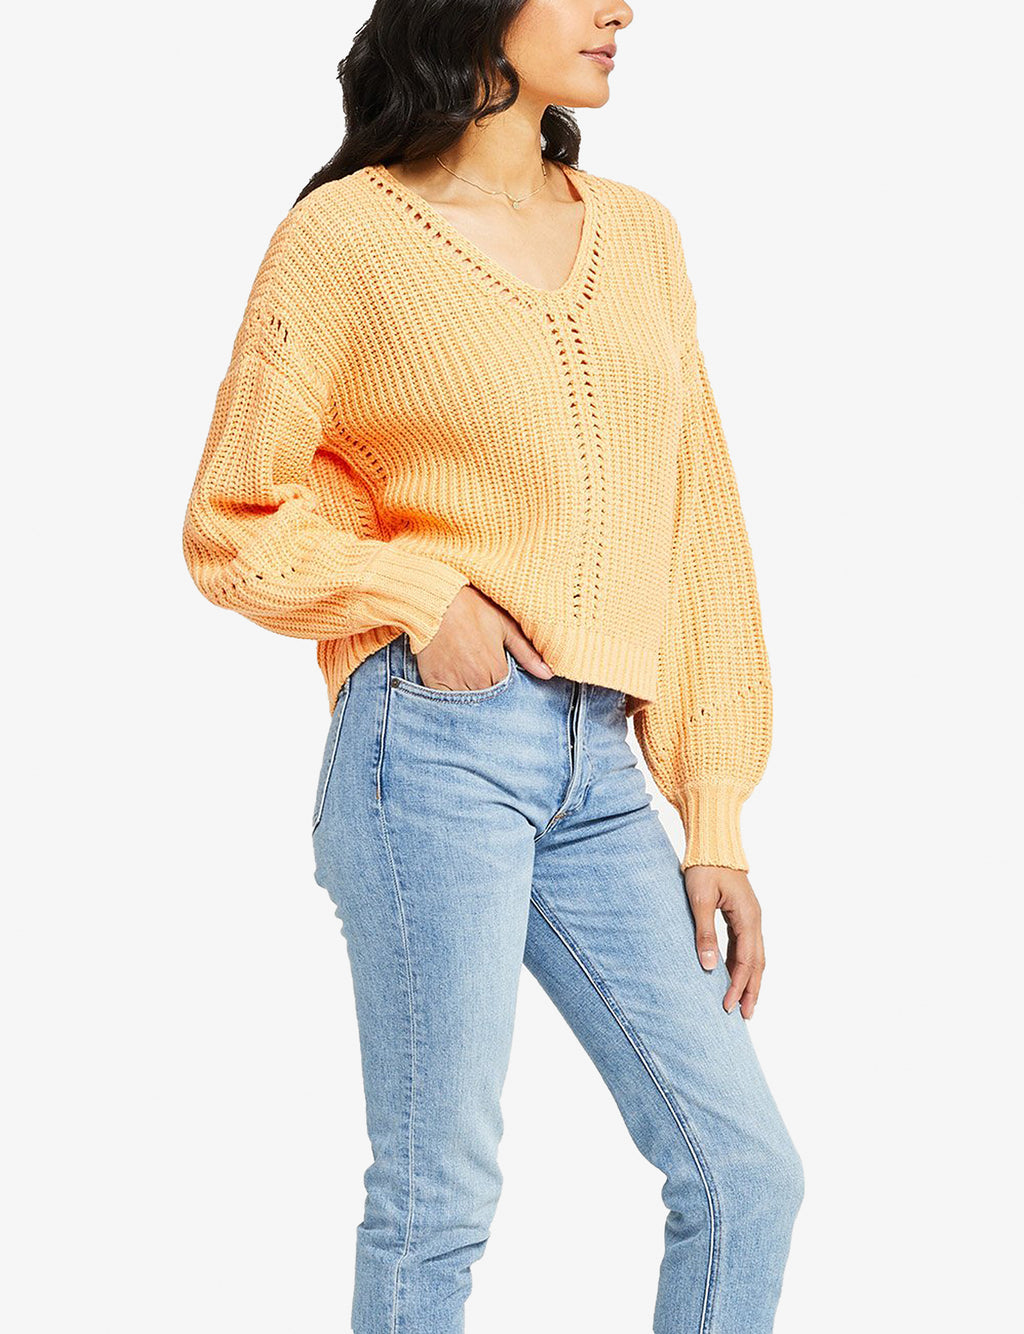 Arizona V Neck Sweater in Sherbert